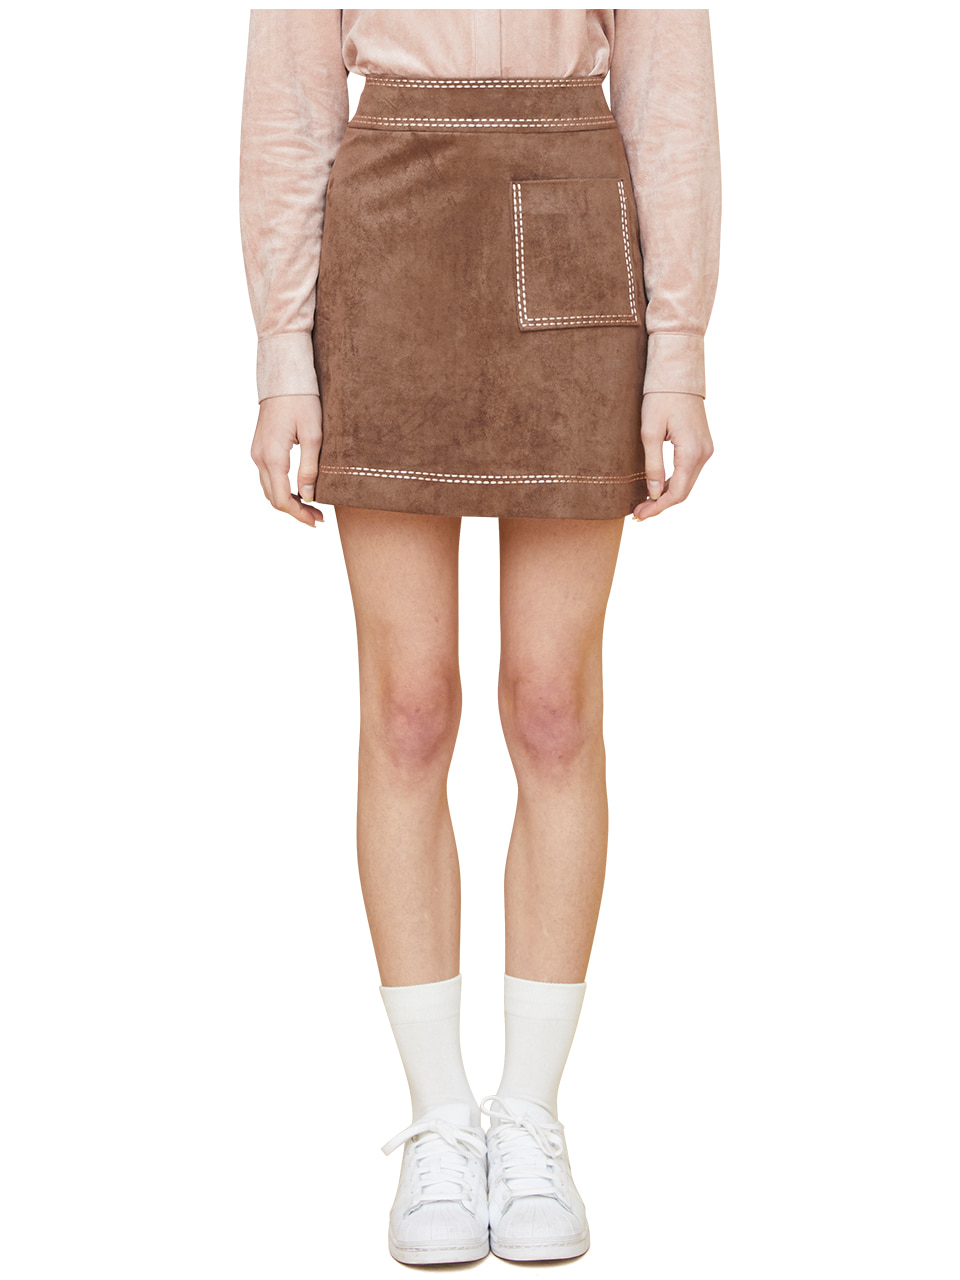 embroidered suede skirt - brown